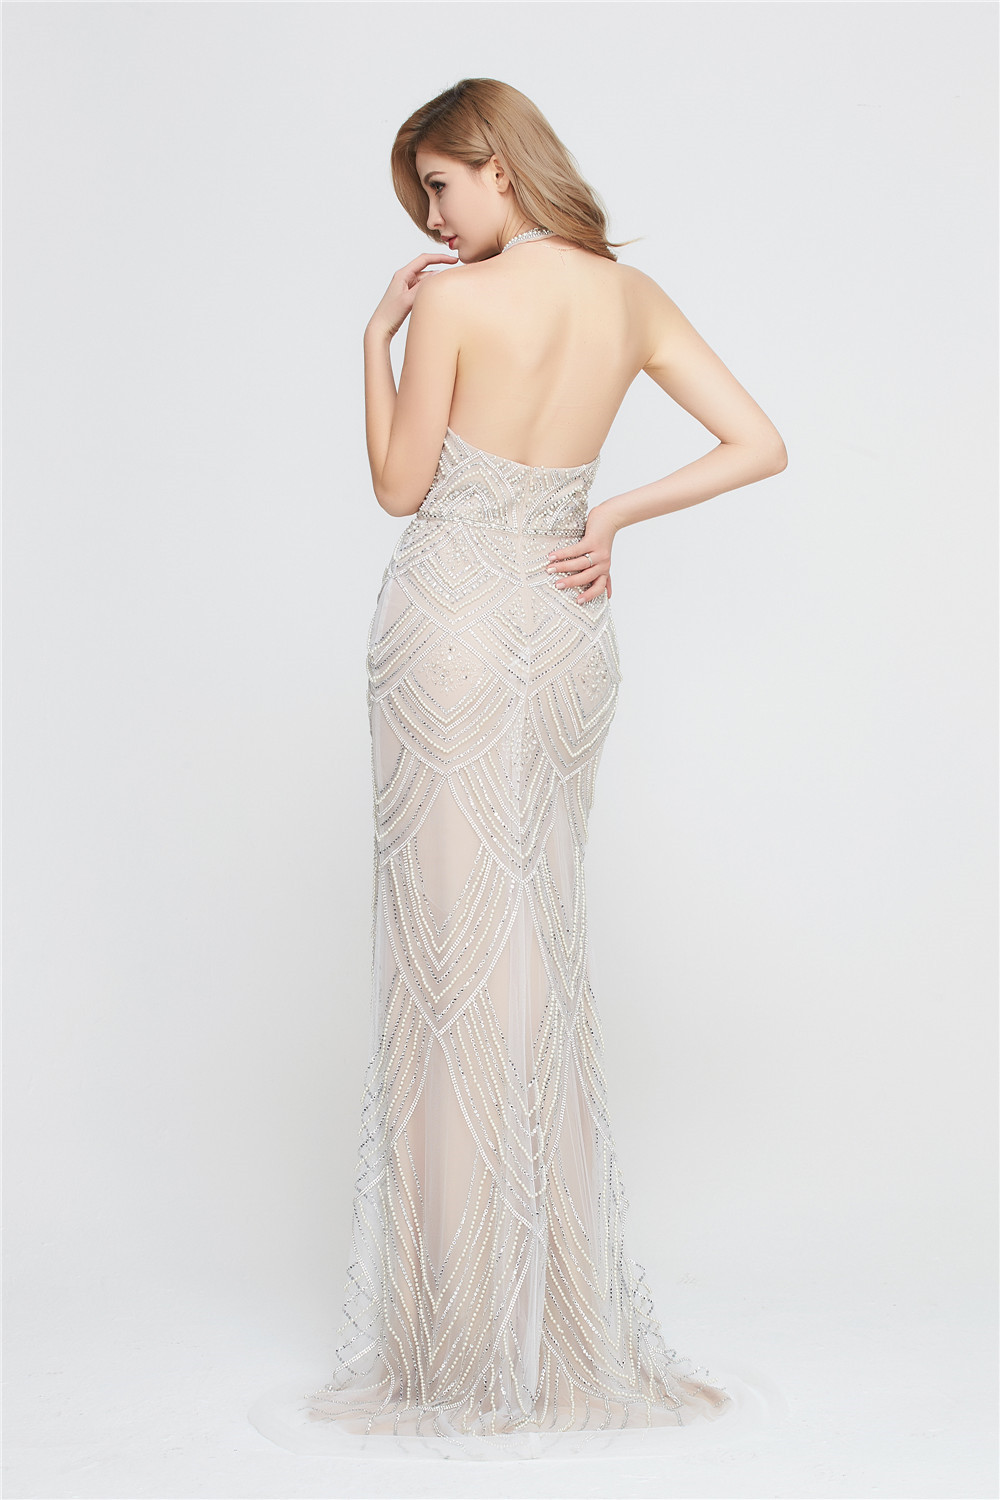 Sexy Ladies  Evening Gown Dresses Wholesale Western Style Backless halter neckline  Women Mermaid  beaded Long Prom Dress CE179